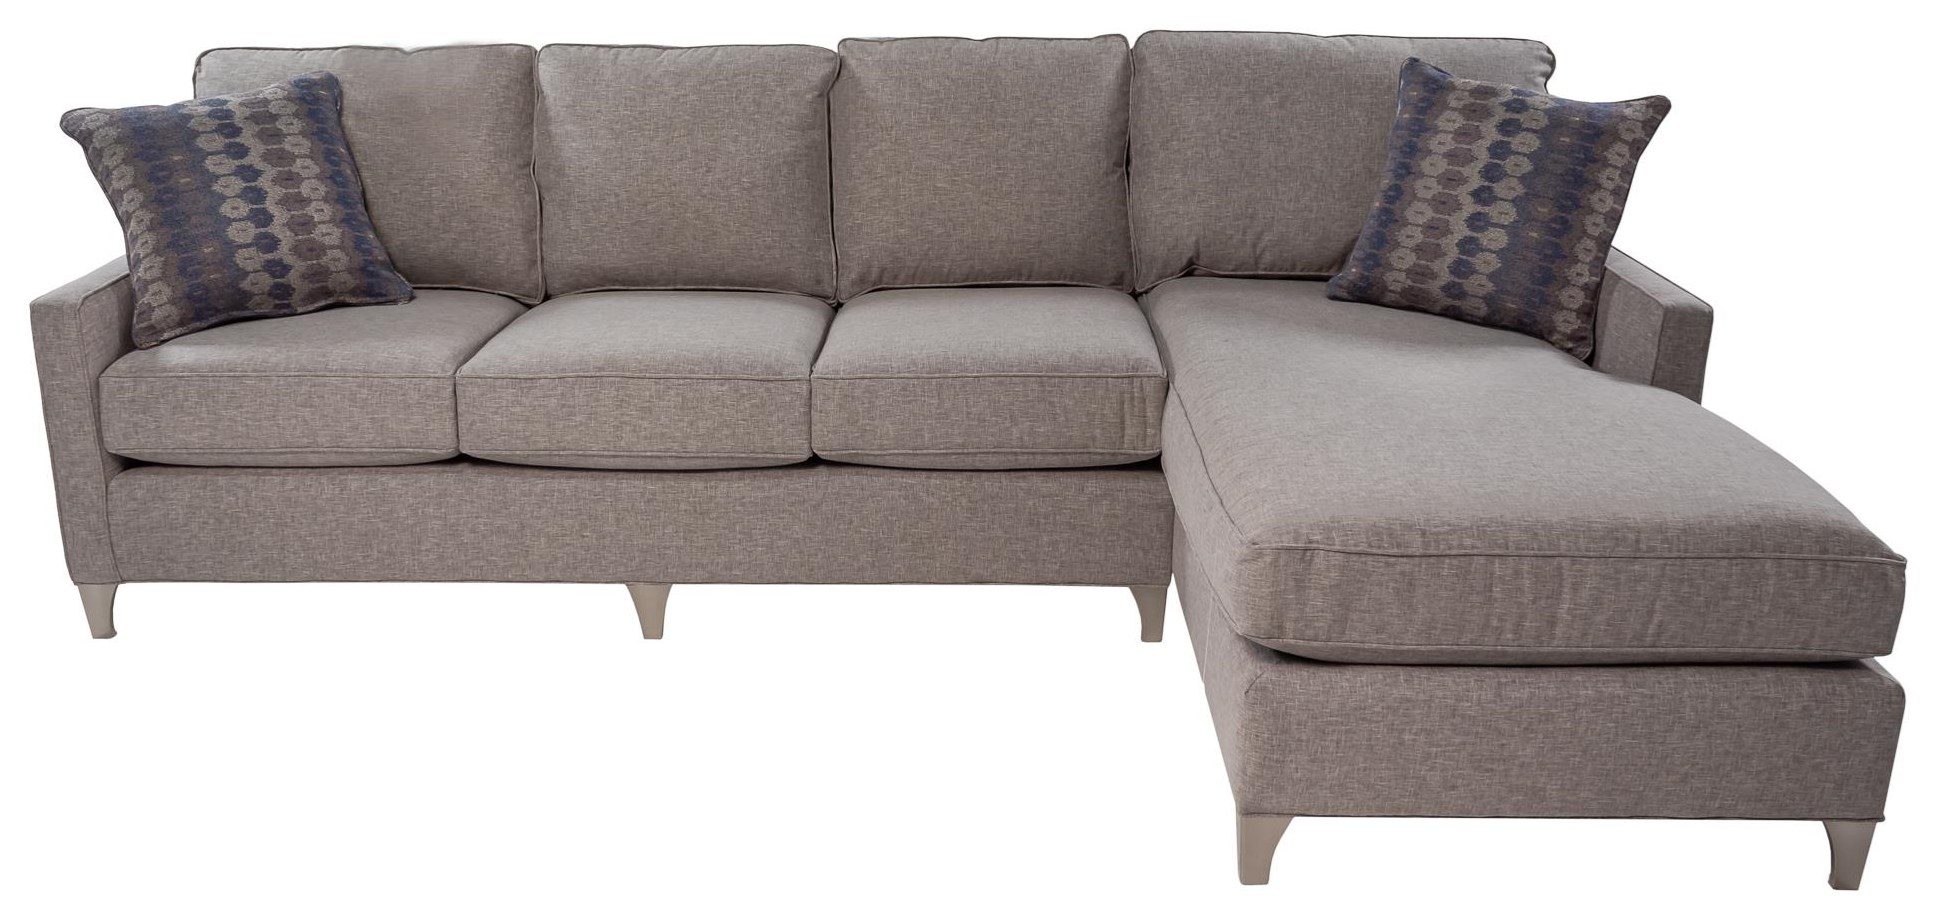 Sweetbriar Customizable Chaise Sectional